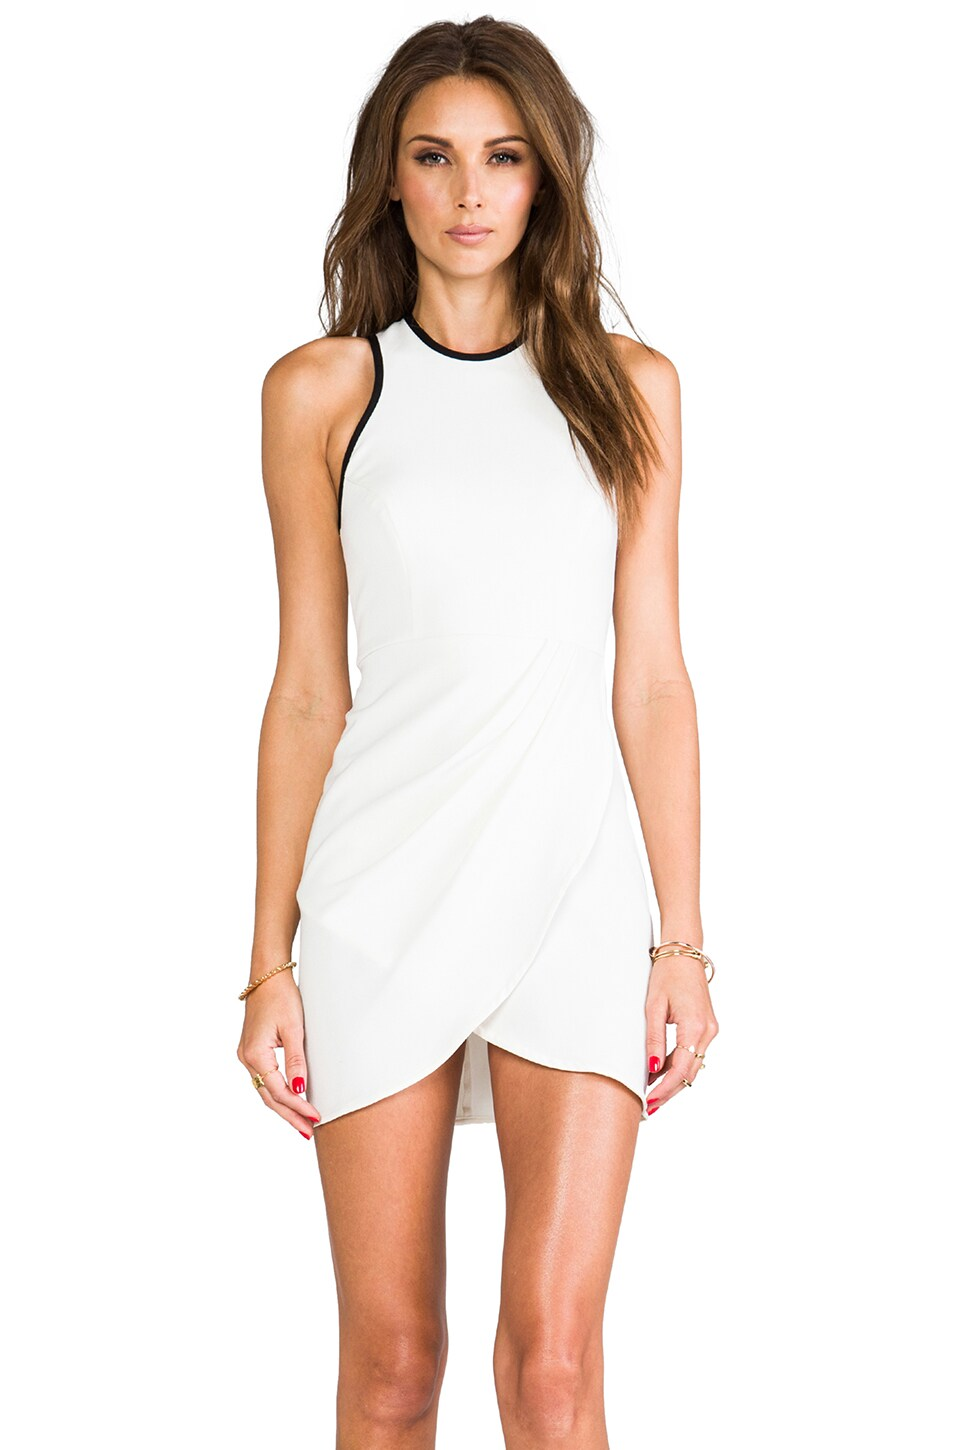 Shona Joy White Noise Draped Body Con Dress in Ivory/Black